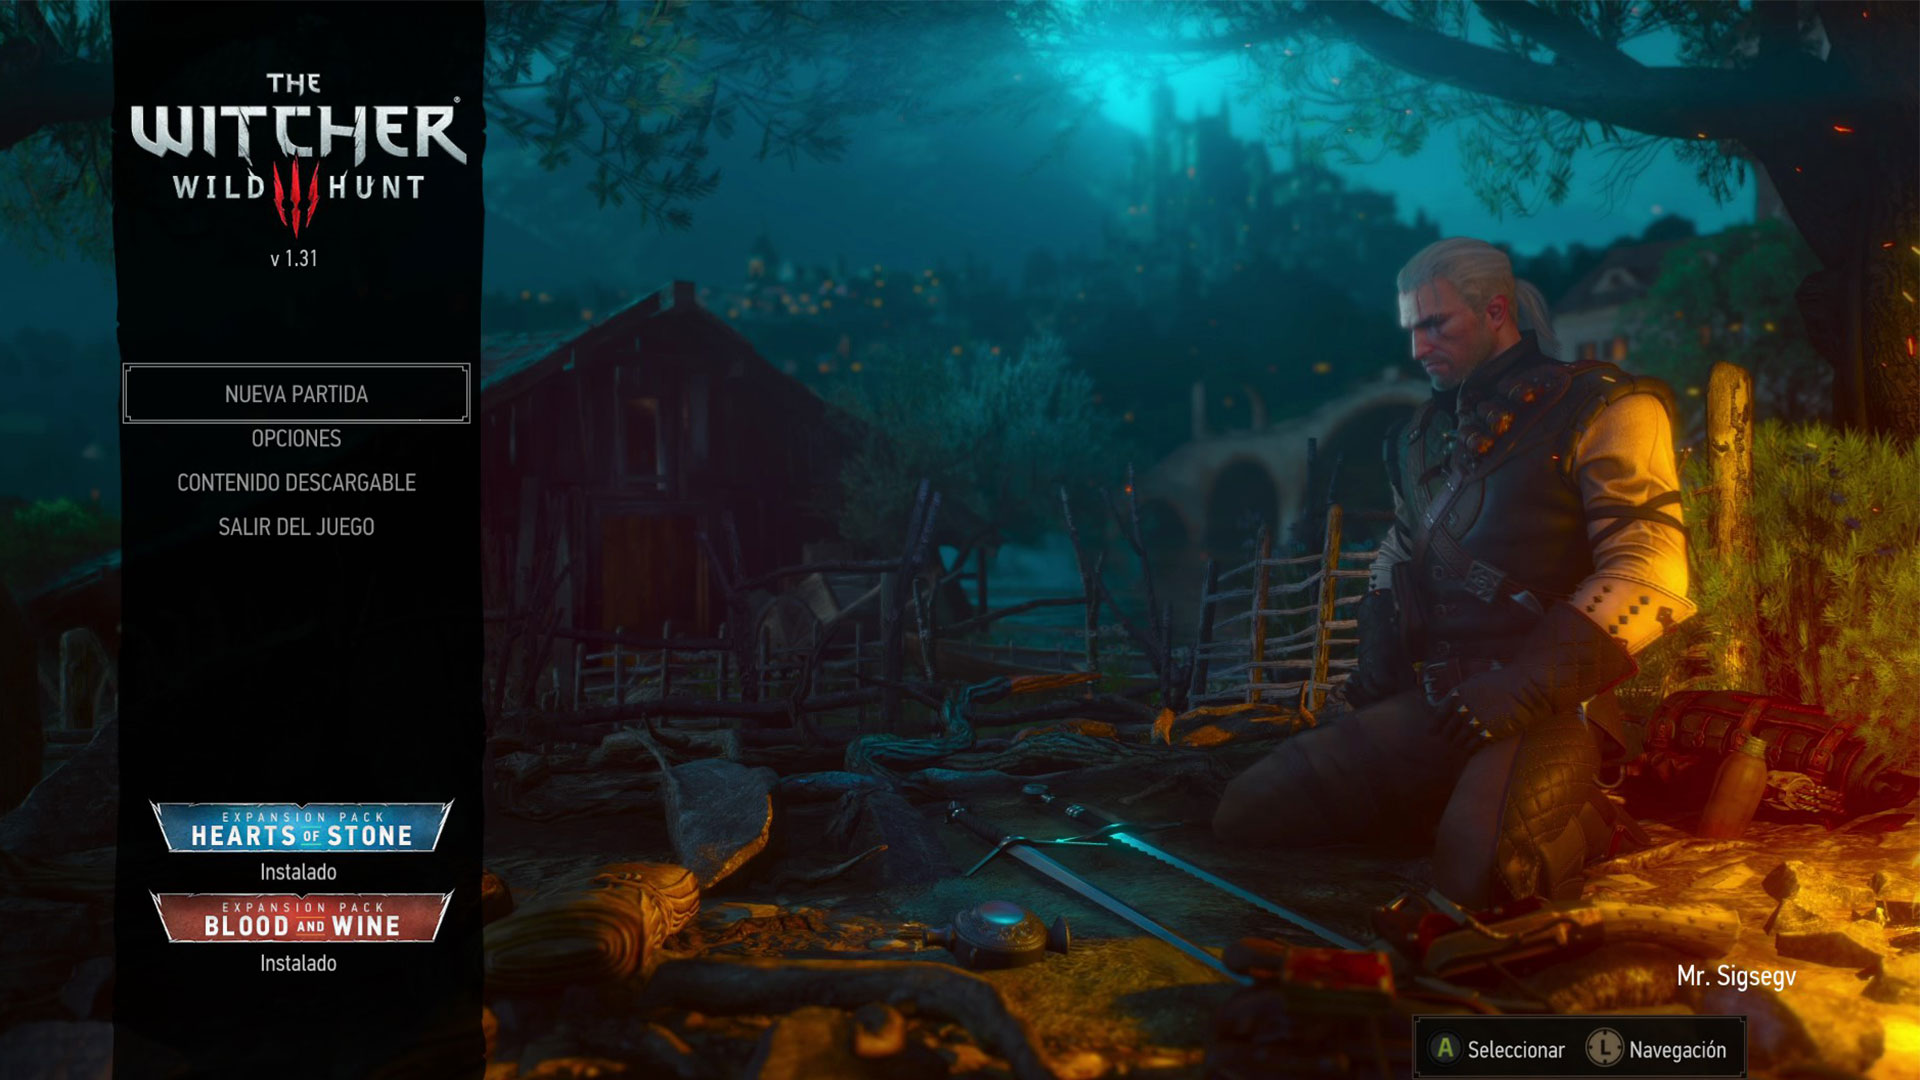 The Witcher 3: Wild Hunt - [Press Start]